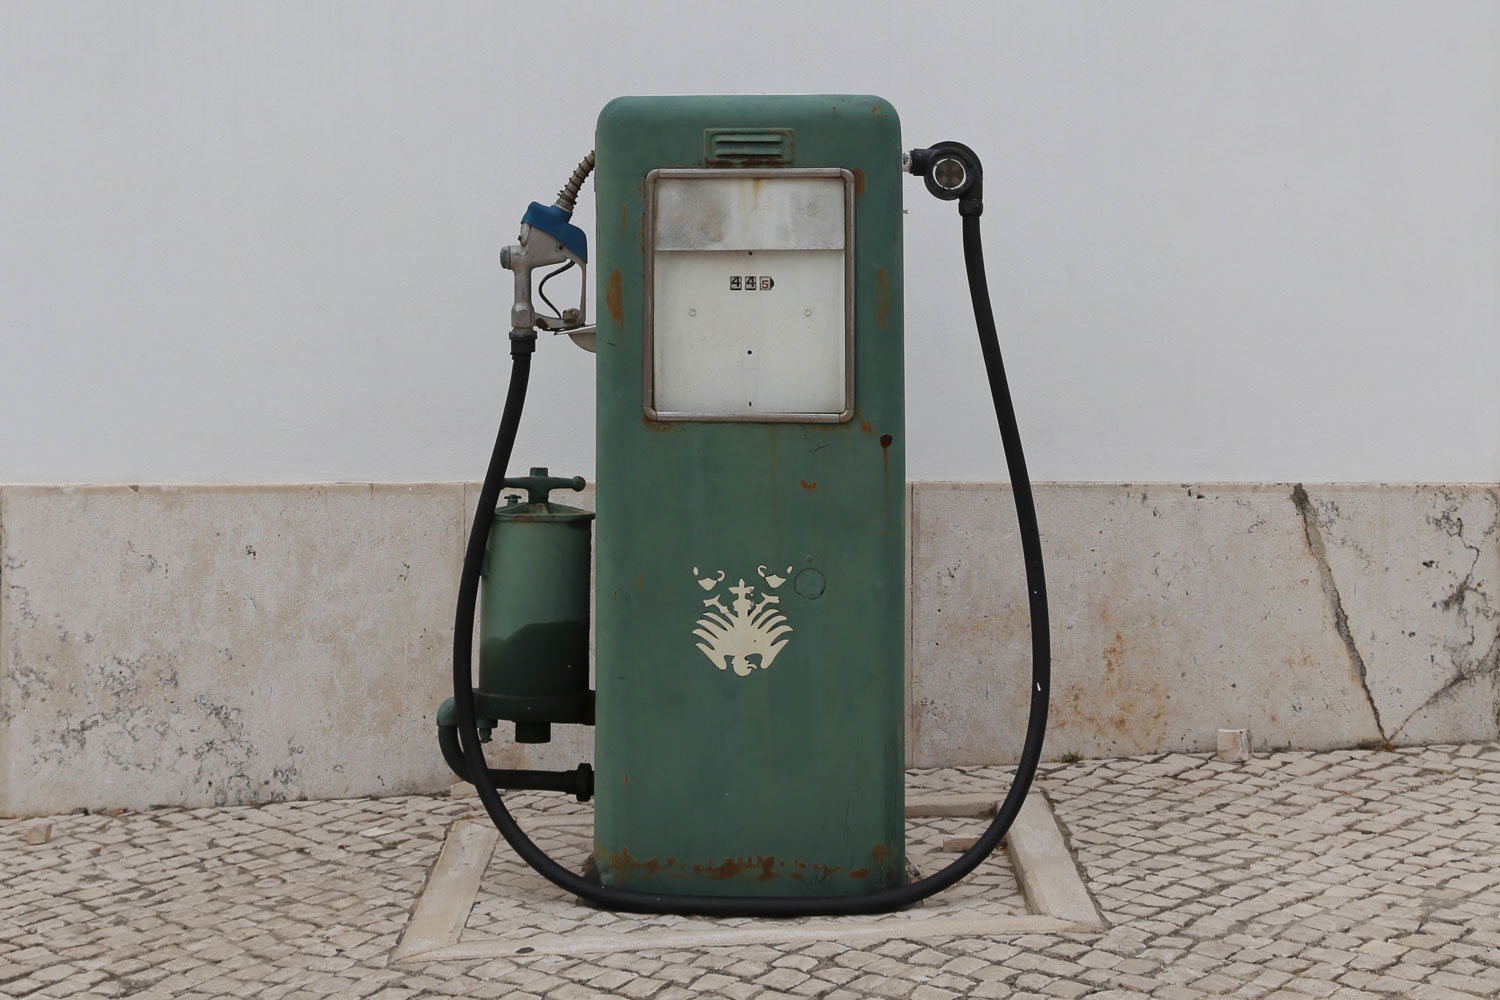 Where You'll Find The Cheapest And Most Expensive Gas While Touring